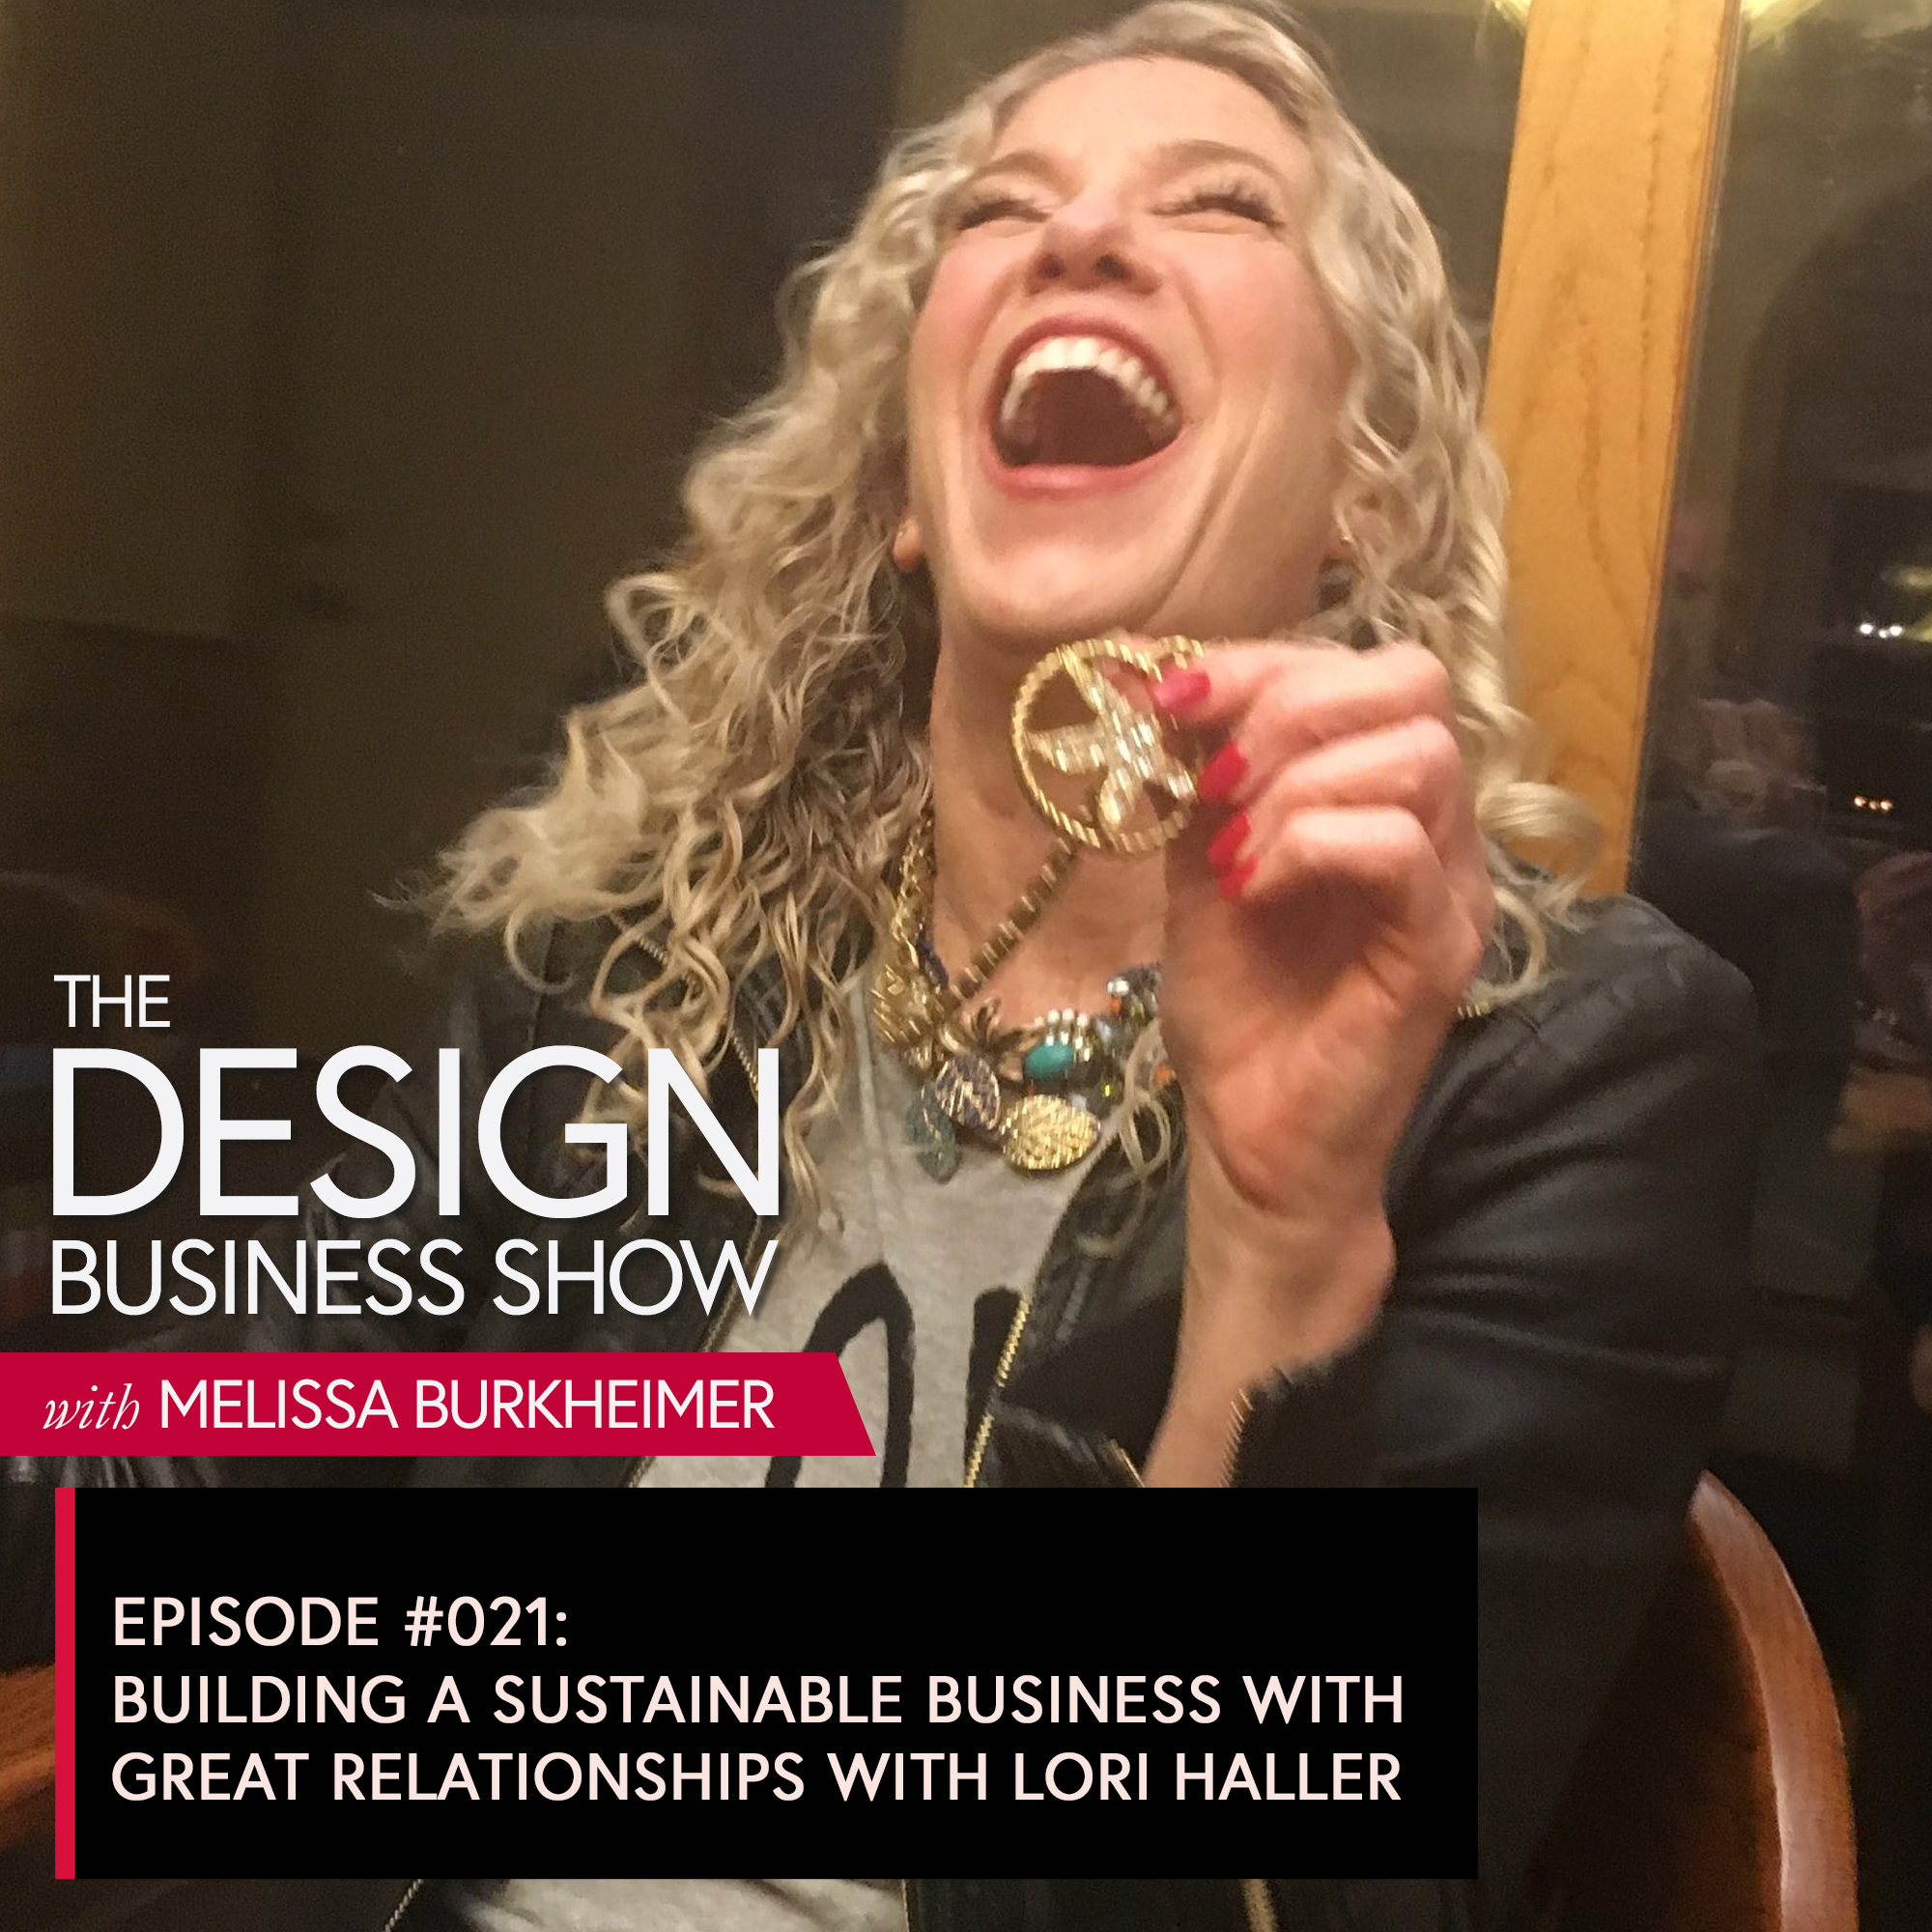 Lori Haller is a highly sought after designer who has worked with advertising royalty and never says no to a project. Learn how building strong relationships has been the key to her long-term business success